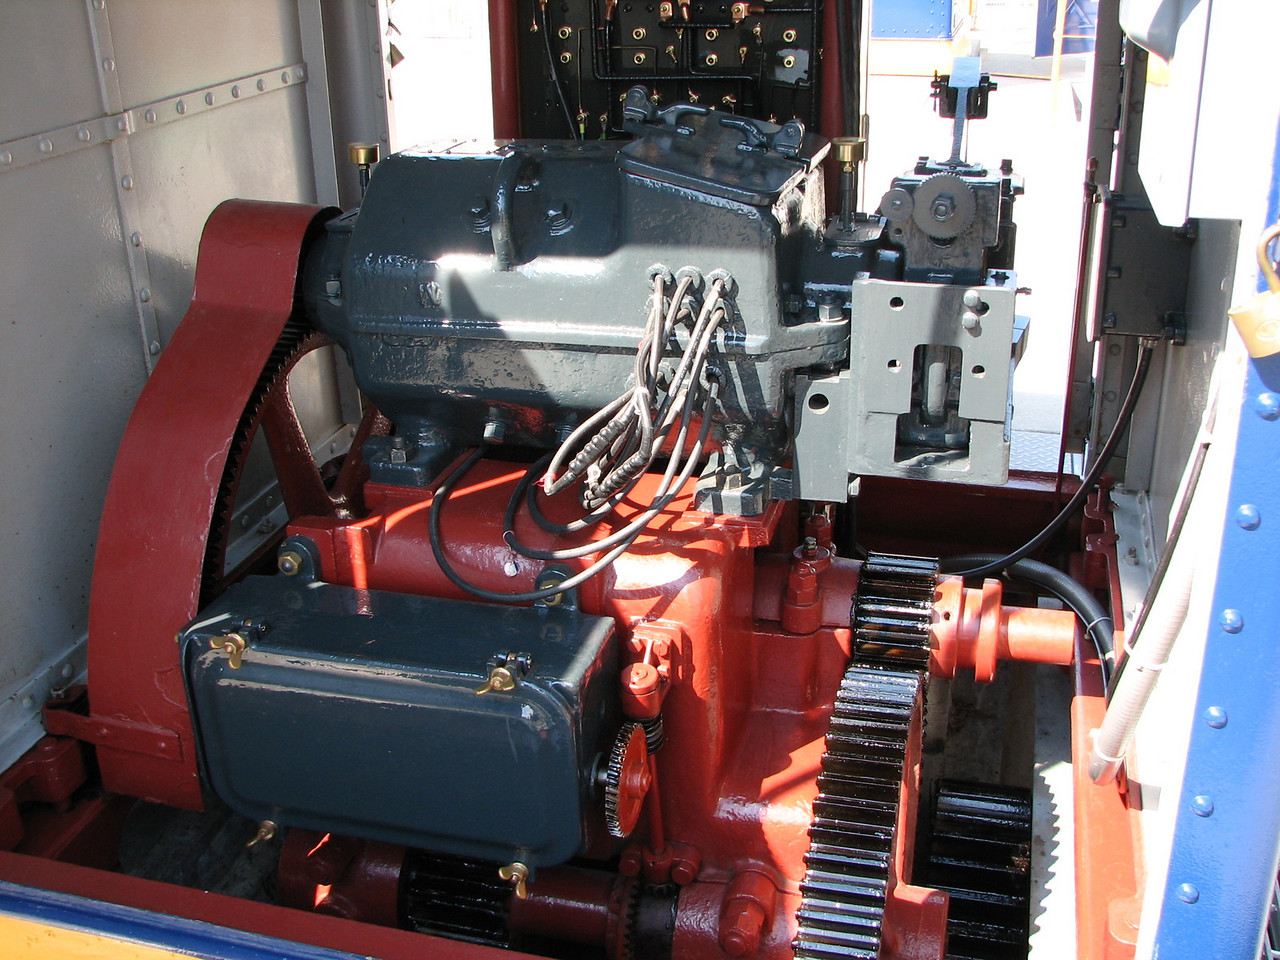 The lock tender showed Lynn and I the seven horsepower DC motor installed in 1914 and still used today to operate the locks.